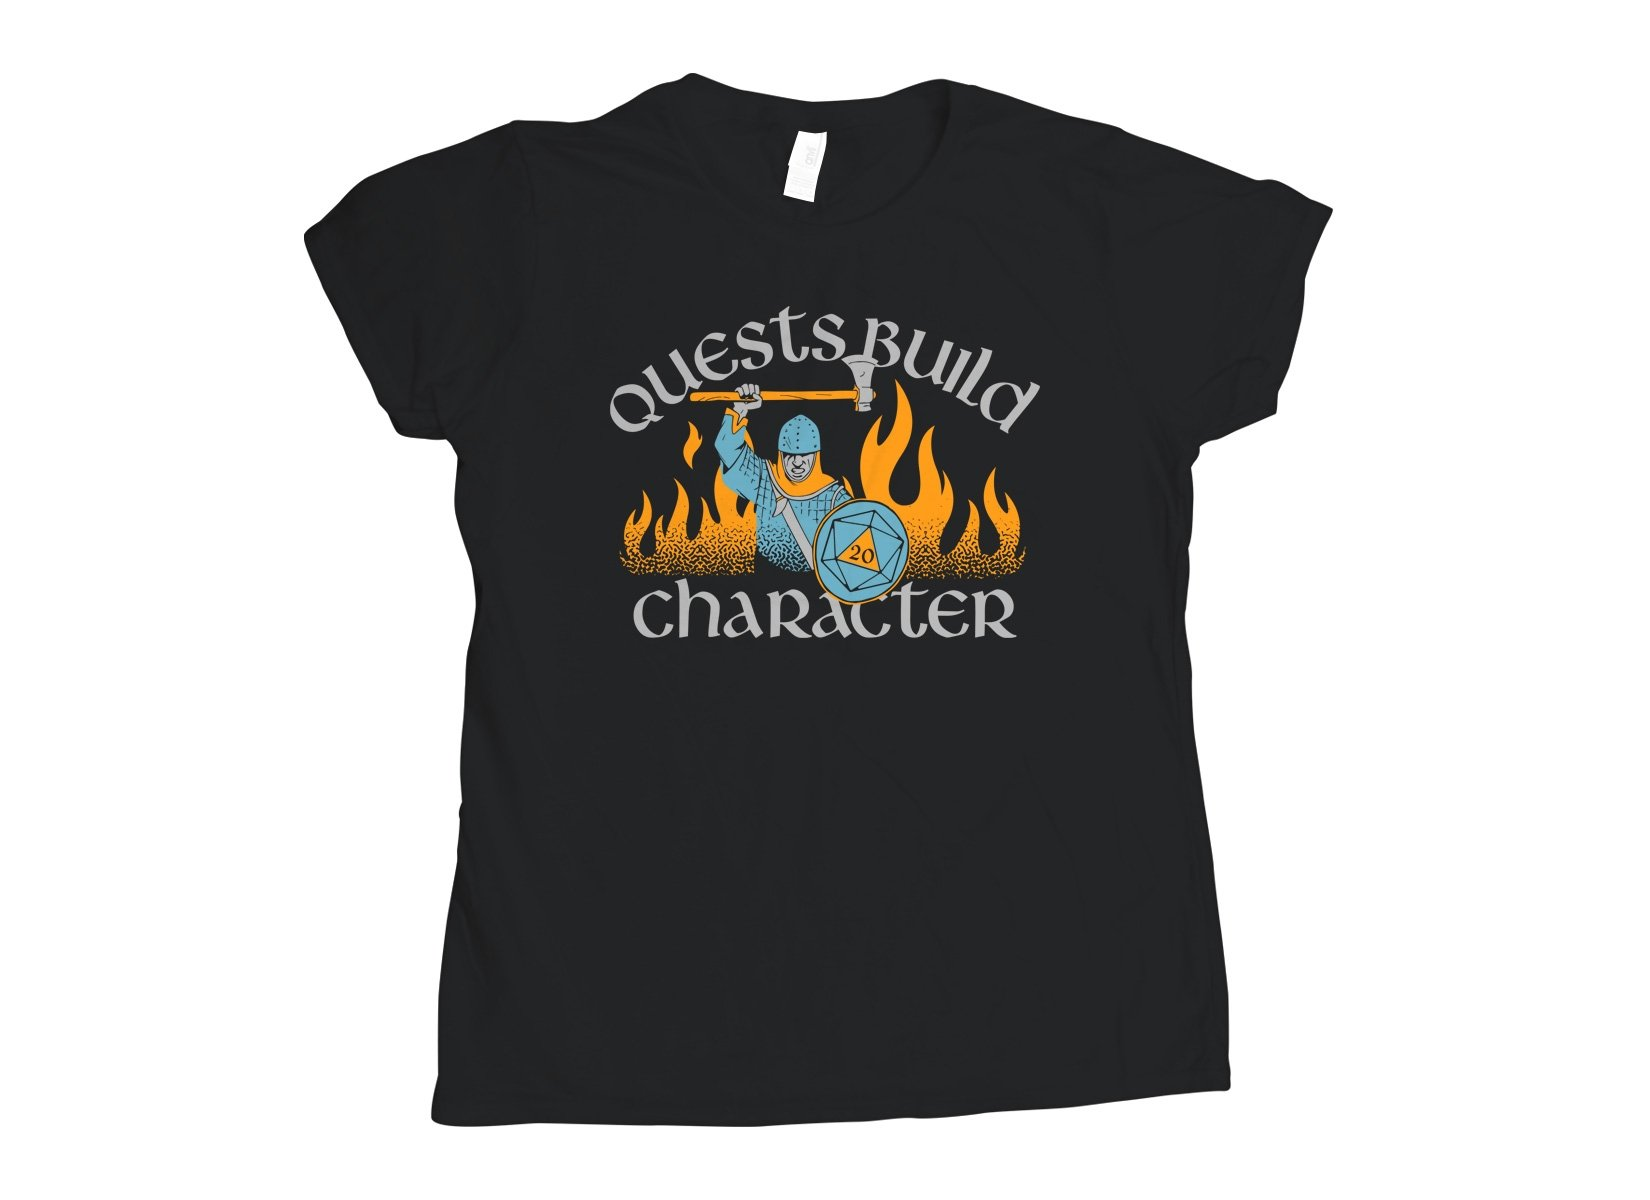 Quests Build Character on Womens T-Shirt